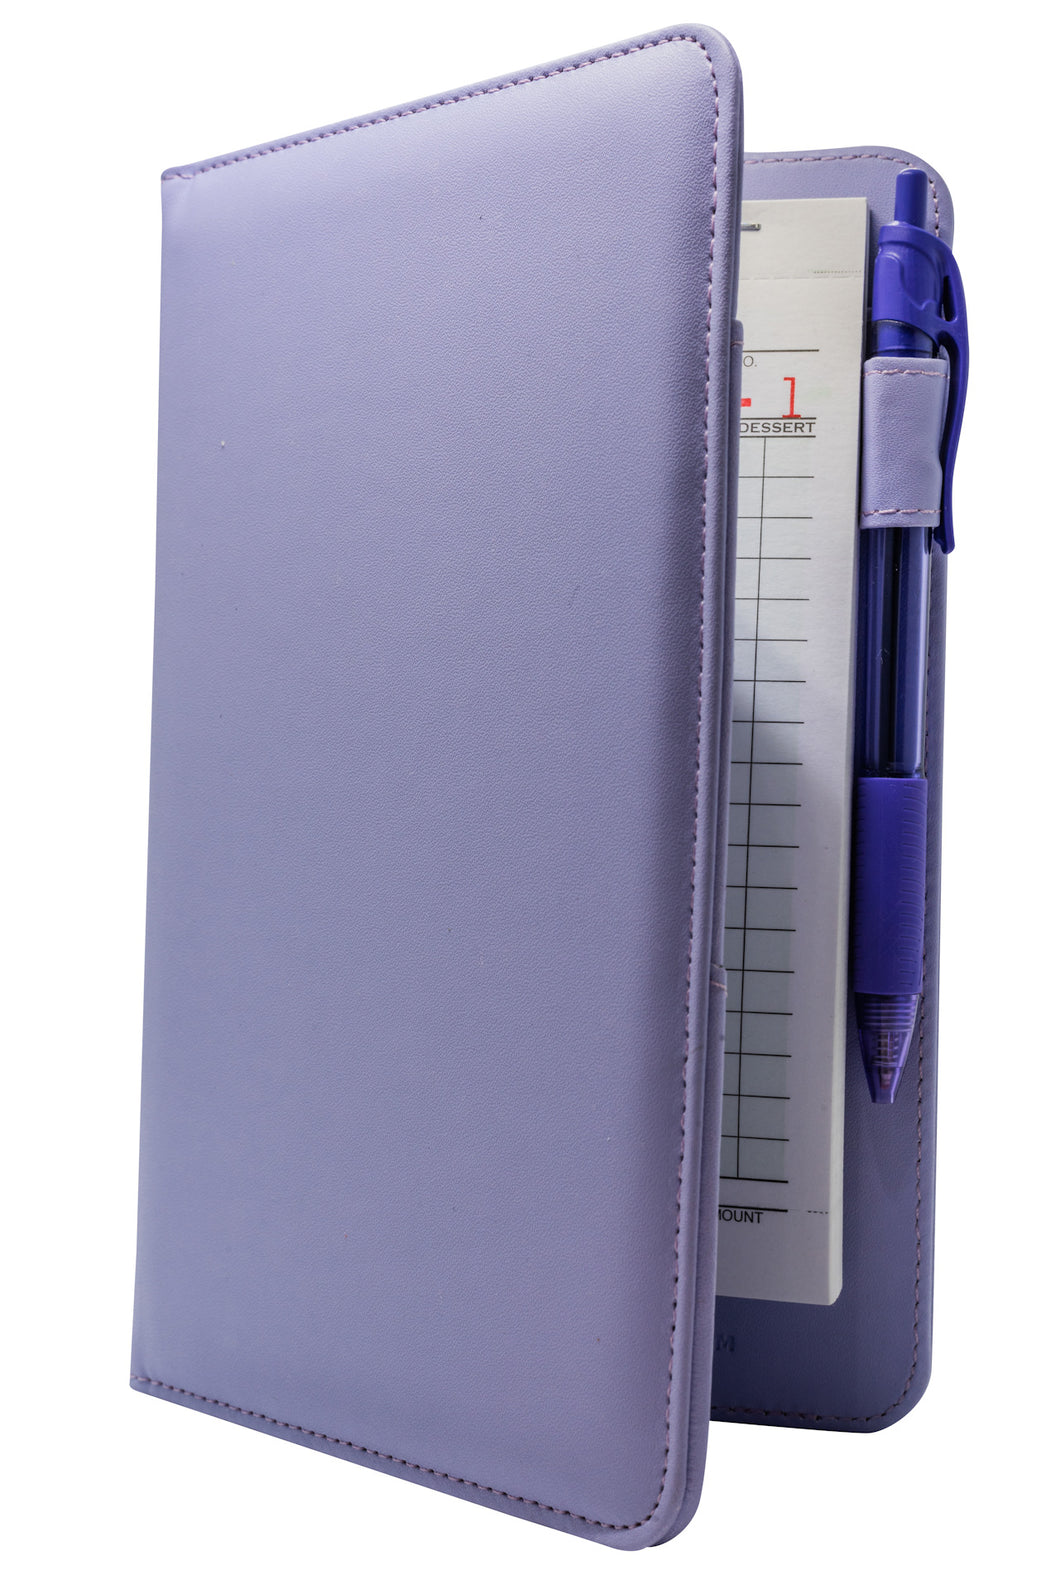 Light Purple Server Book with Purple Pen for Servers